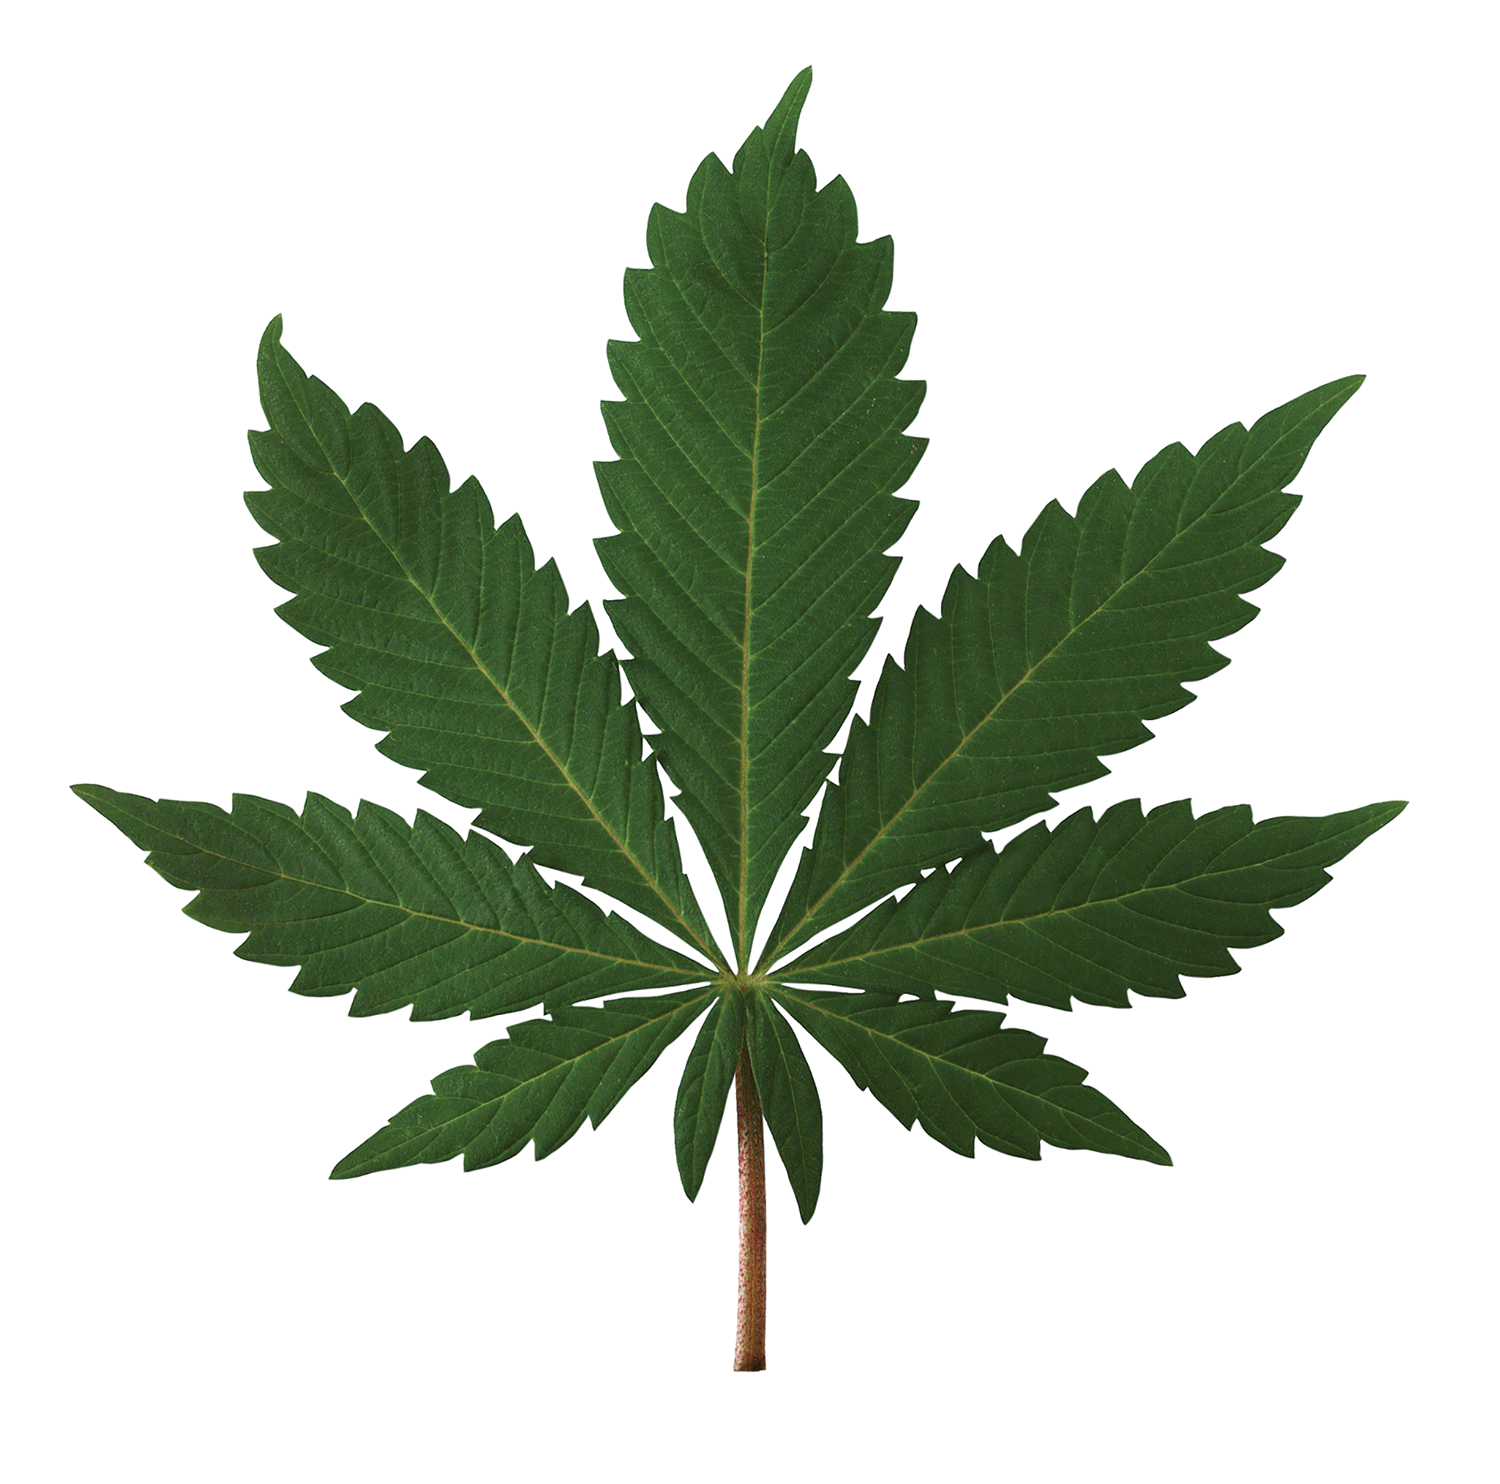 County temporarily bans industrial hemp due to lack of regulations